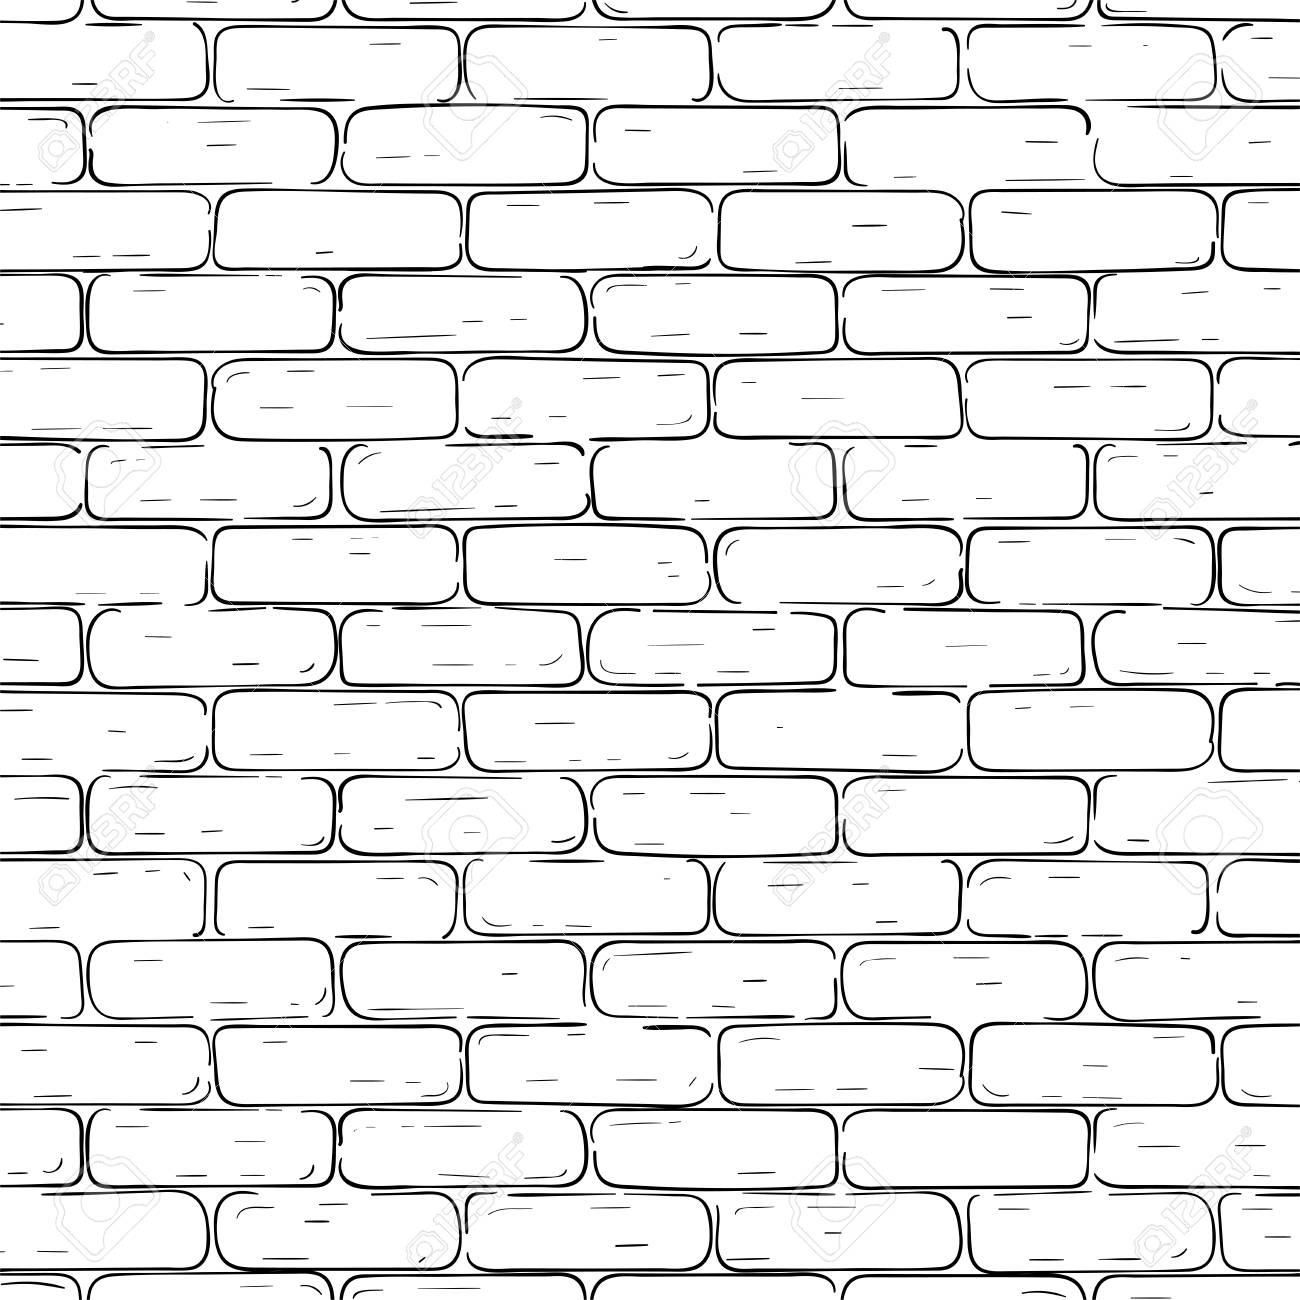 Brick wall background. Black and white texture. Vector illustration.